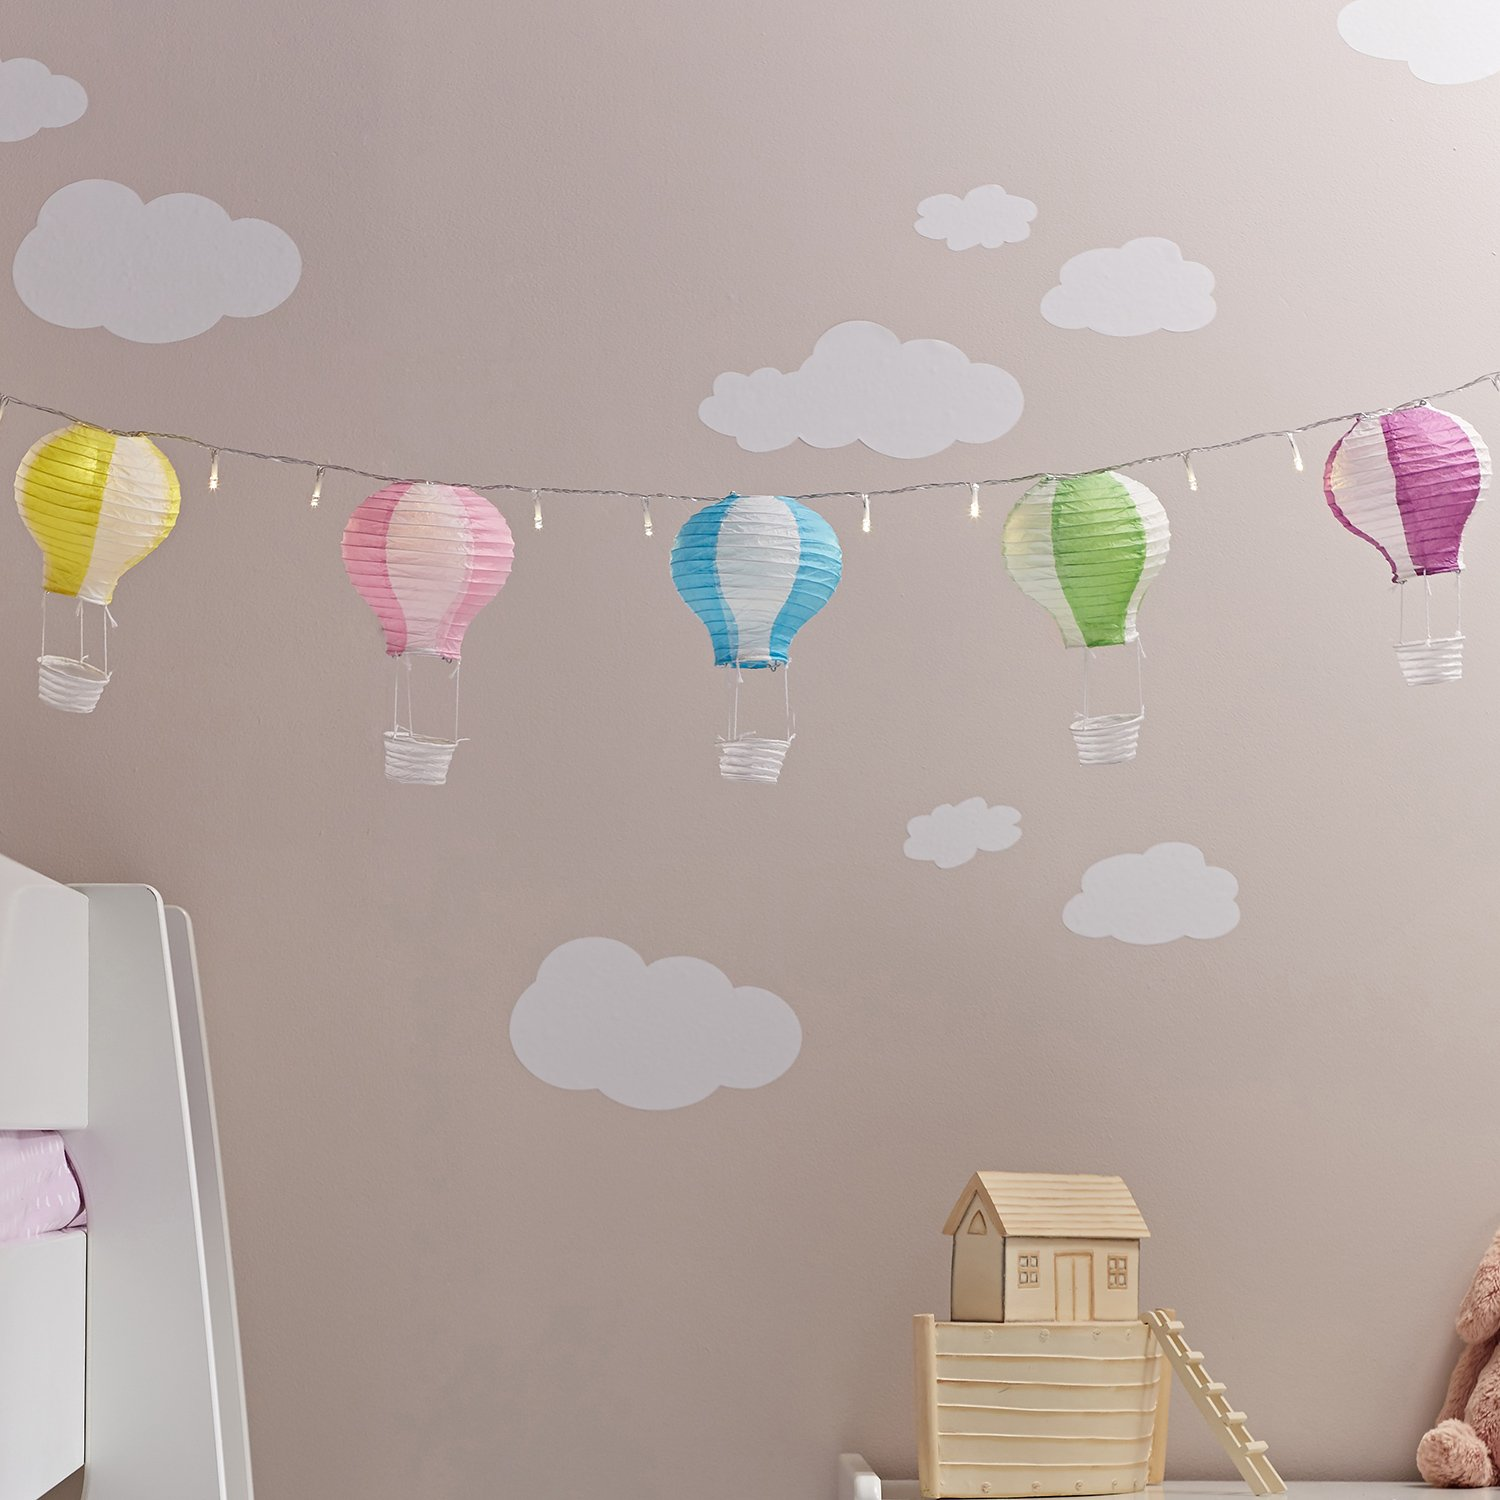 Heißluftballon Deko Kinderzimmer Deko Lights4fun: Amazon.de: Küche ... | {Babyzimmer deko 80}